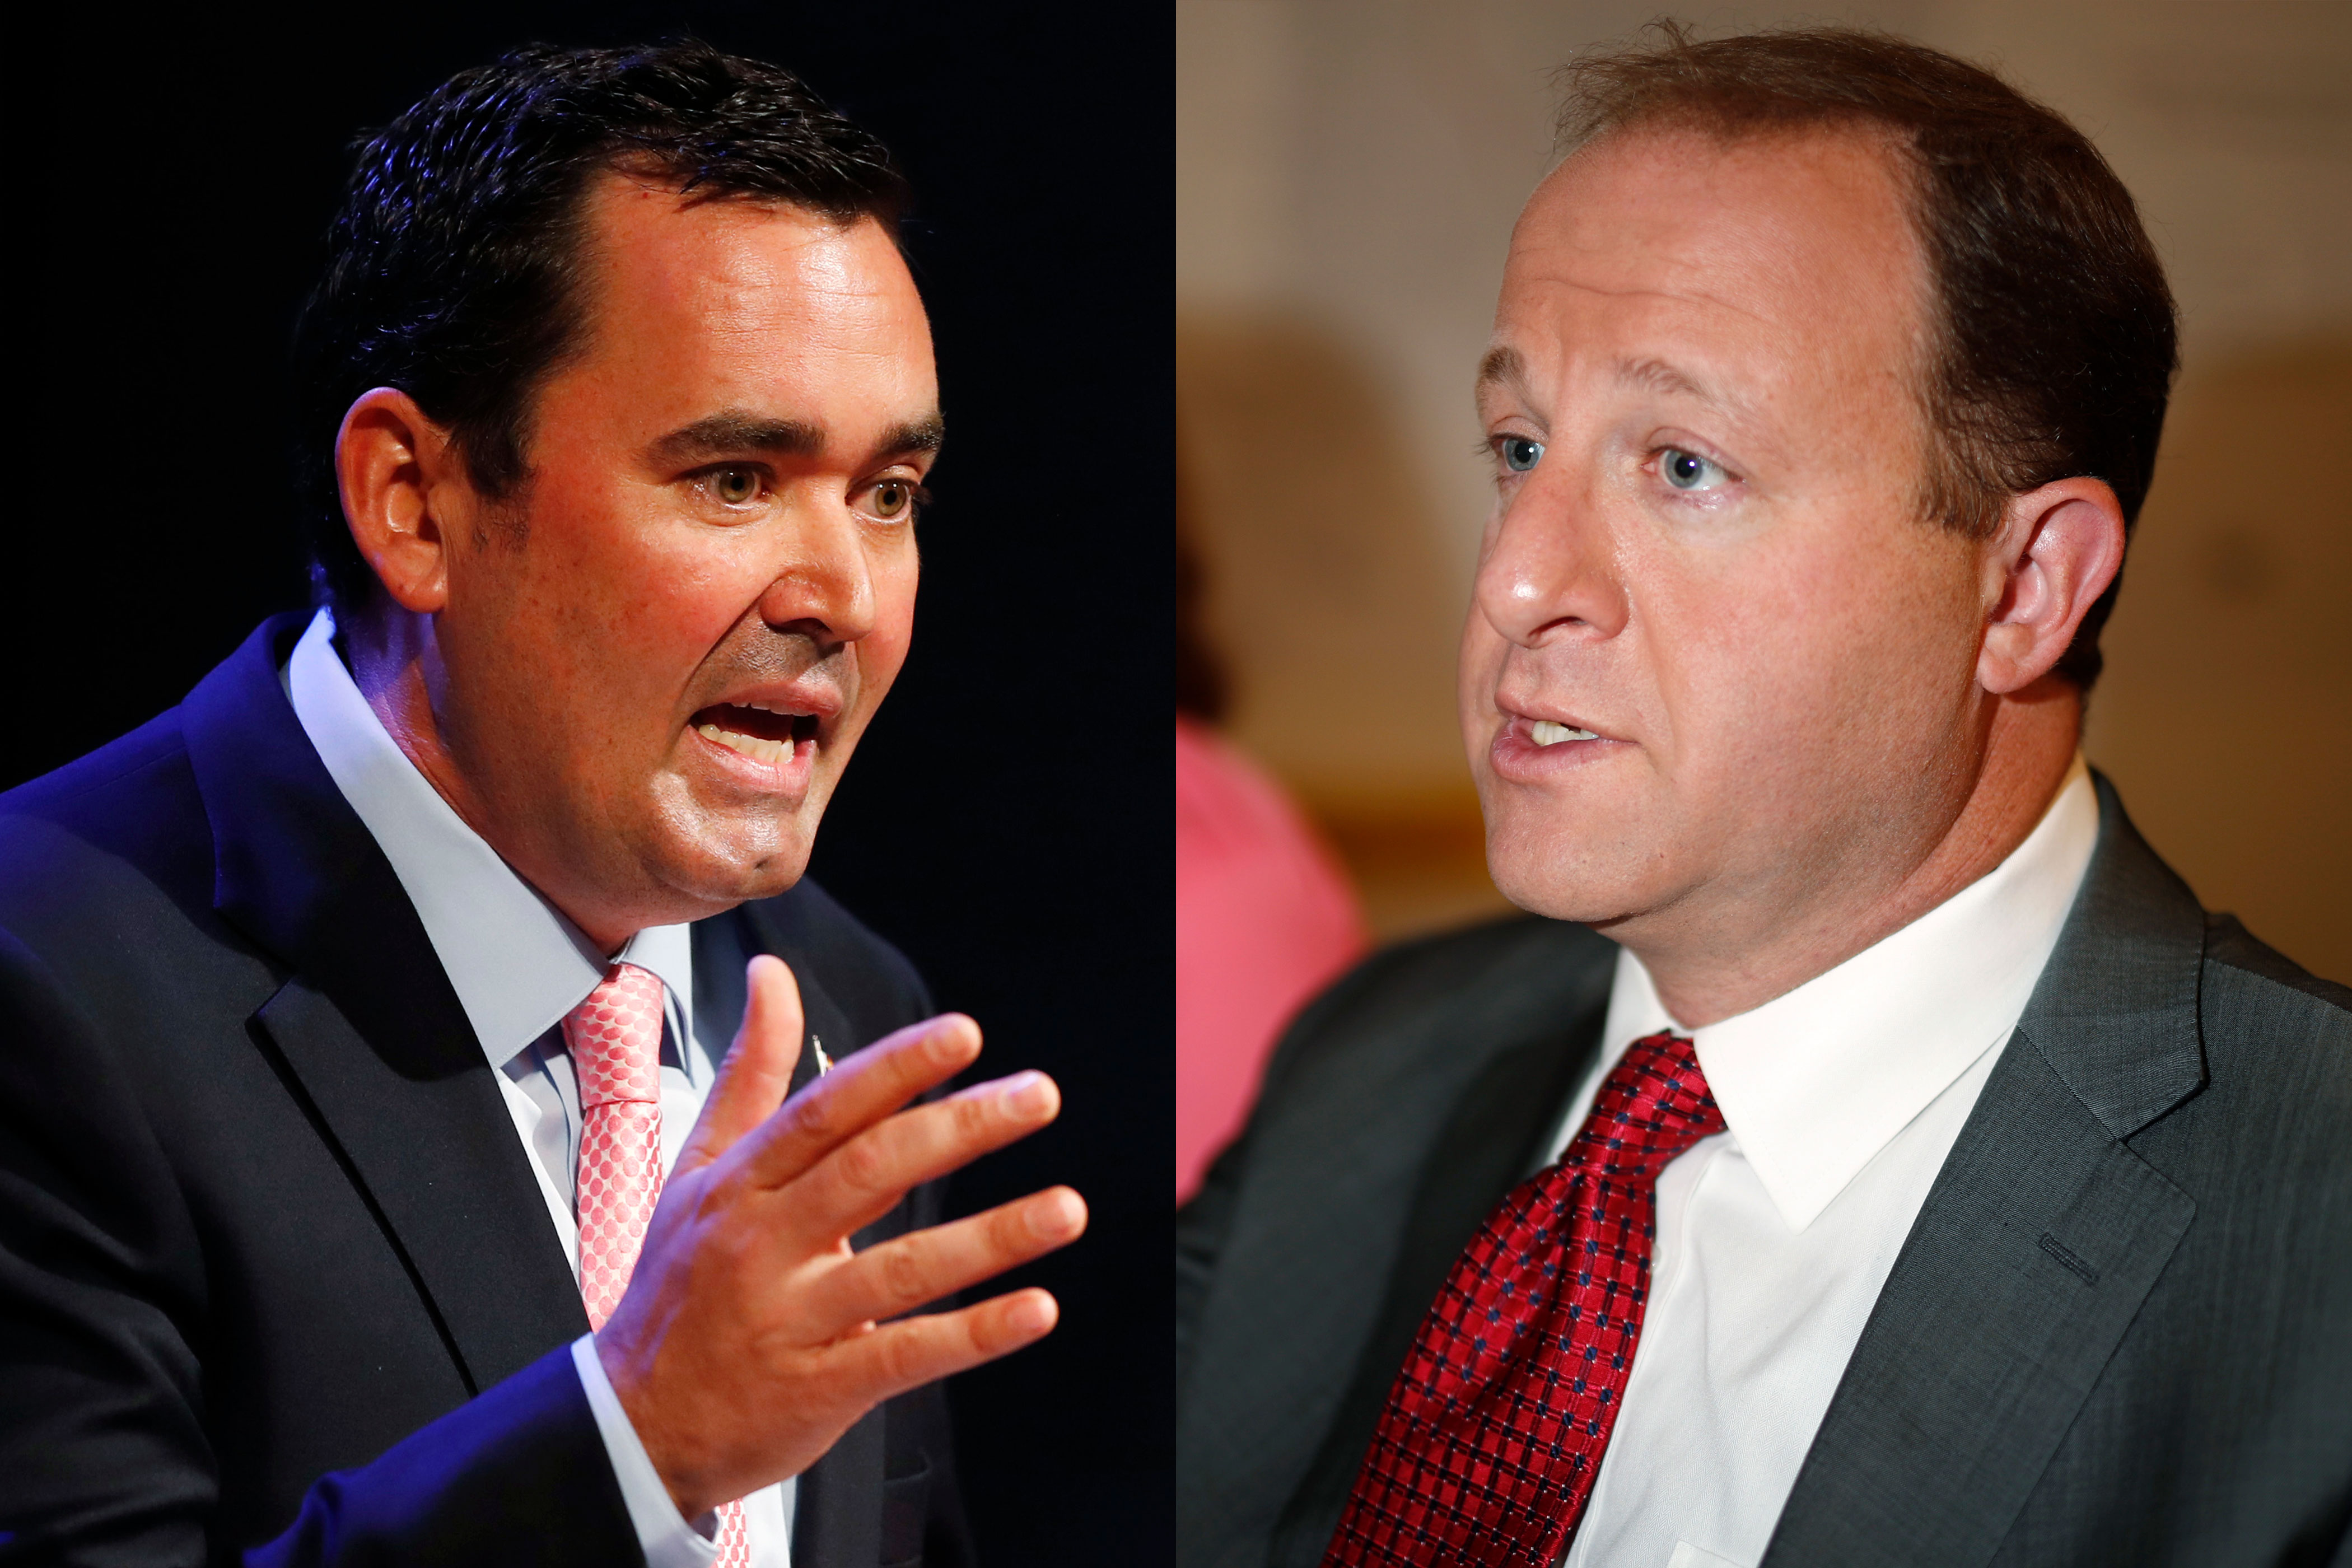 <p>Walker Stapleton, left, responds to a question during June 2018 debate in Denver, Colo.;Jared Polis, right,speaks during an interview as his choice for lieutenant governor running mate, July 2, 2018.</p>